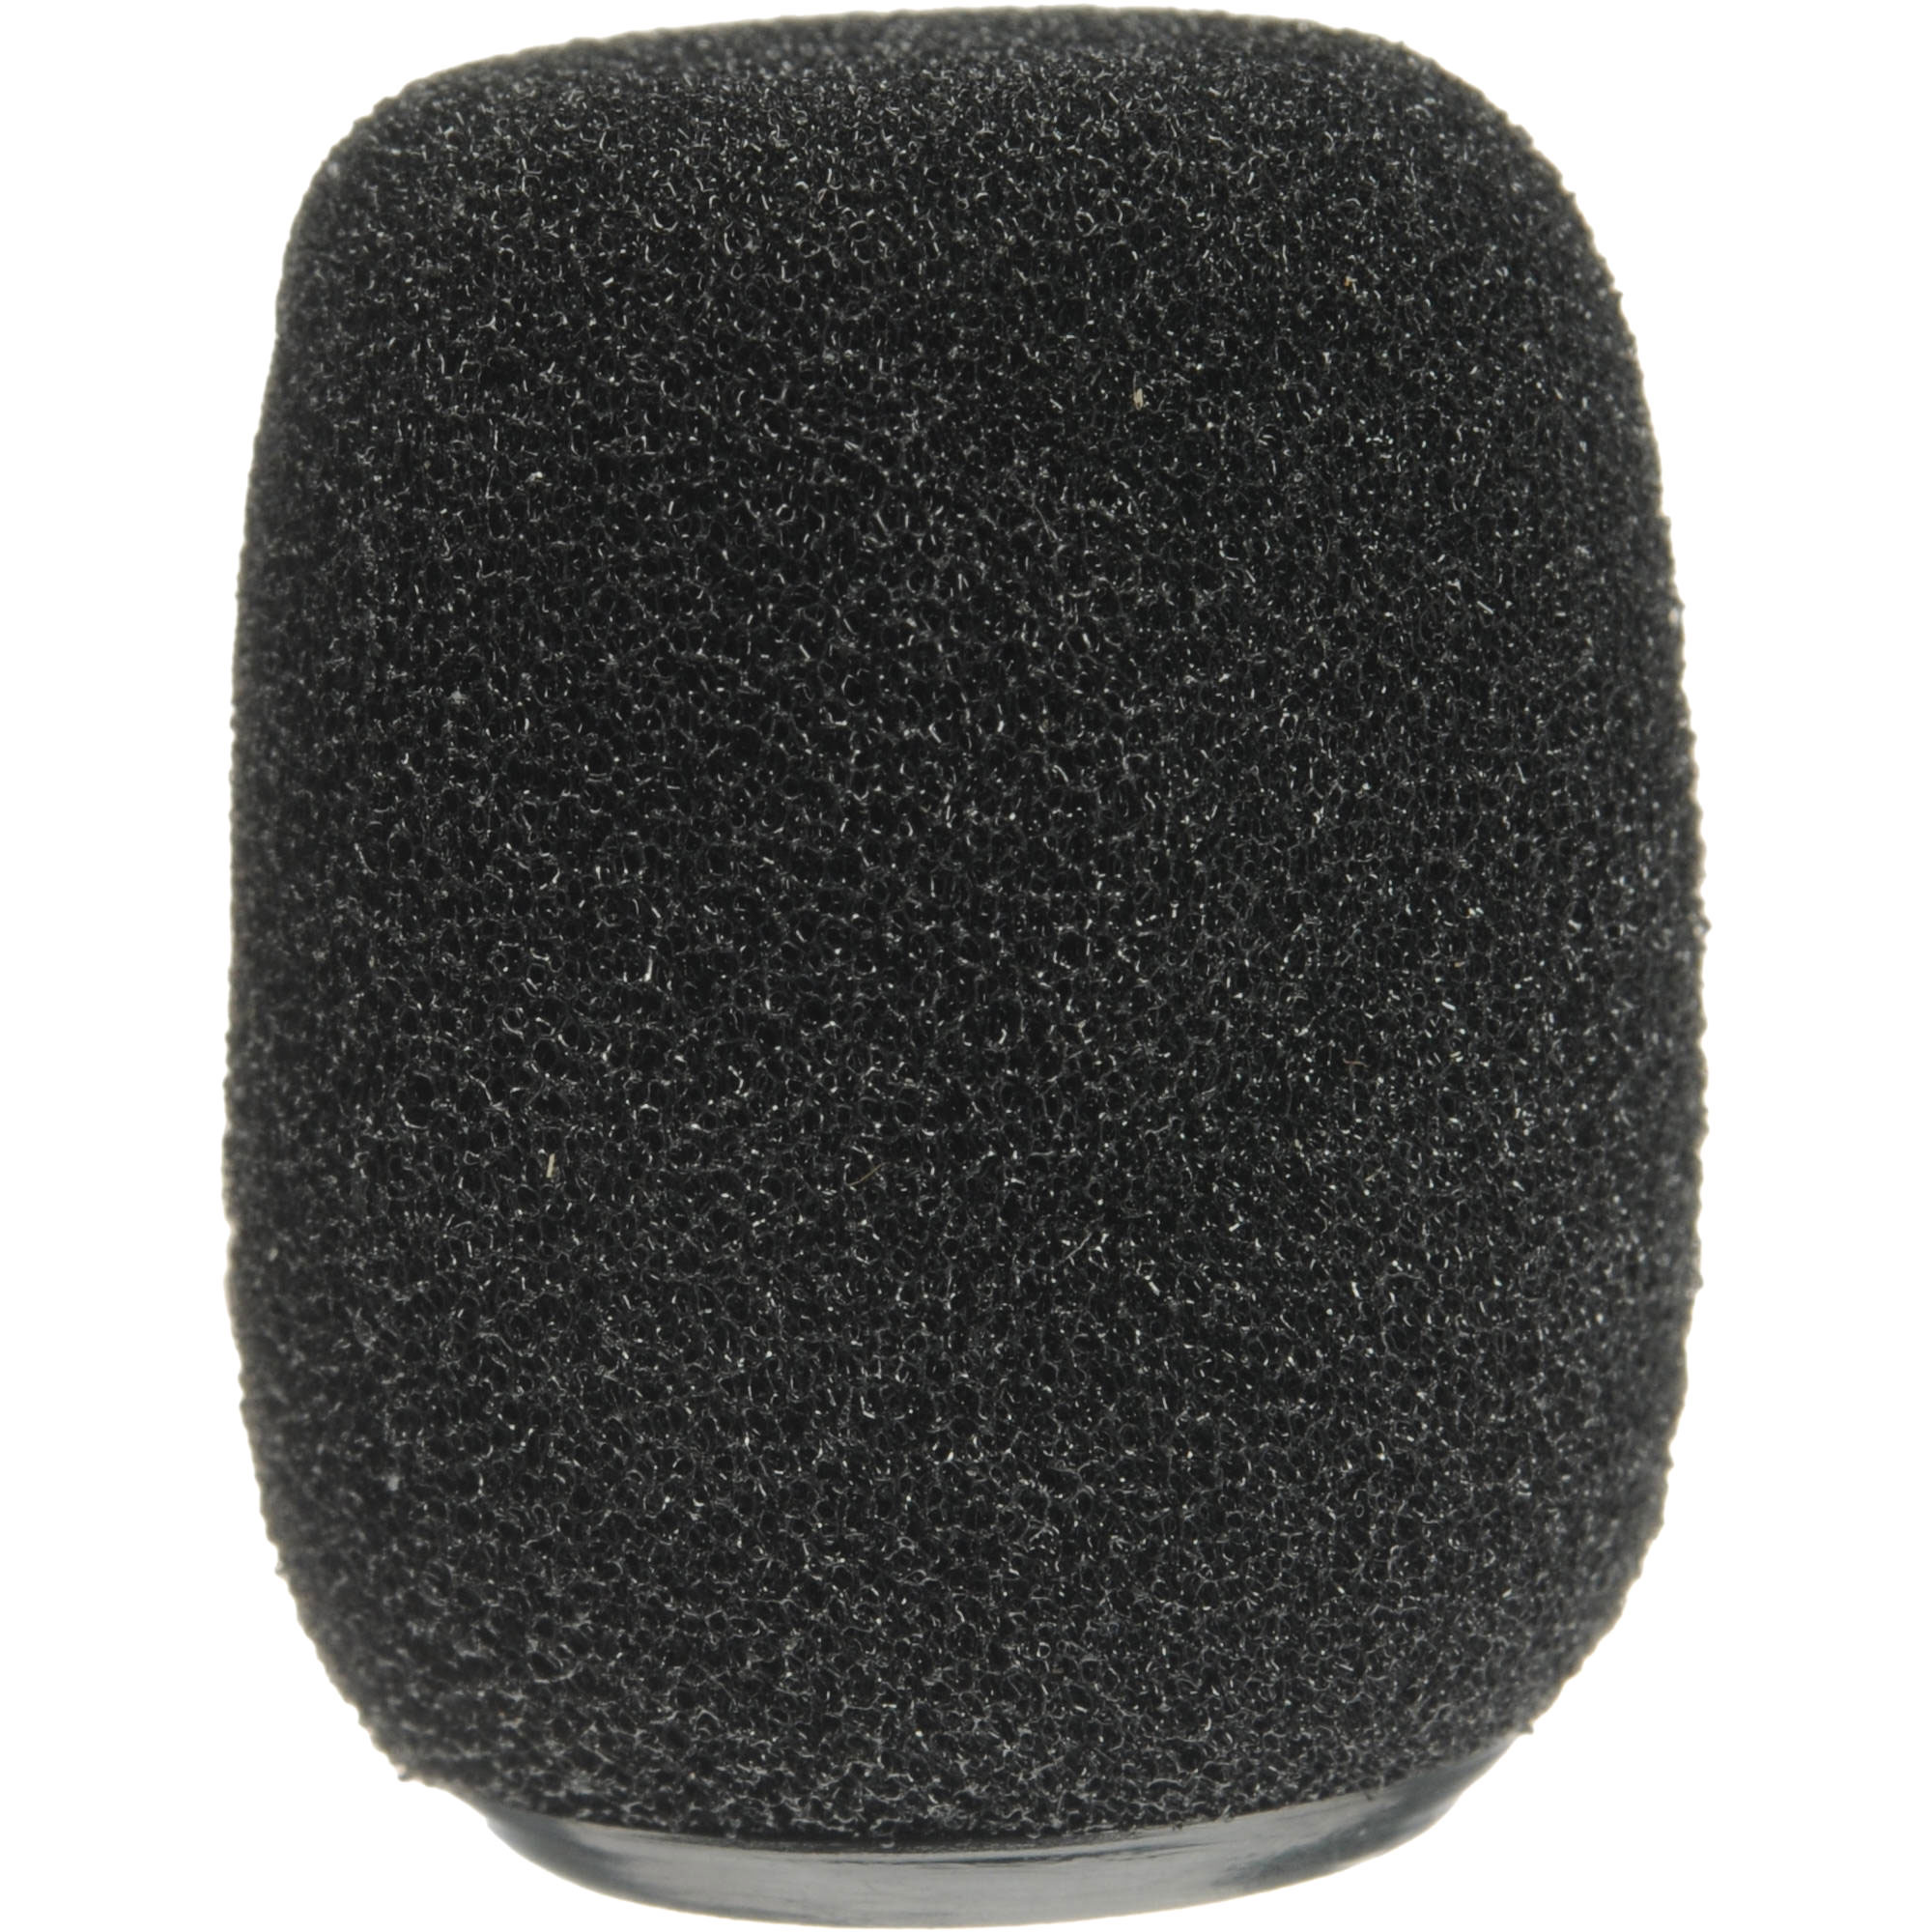 Shure Black Snap-Fit Foam Windscreens (4-Pack)